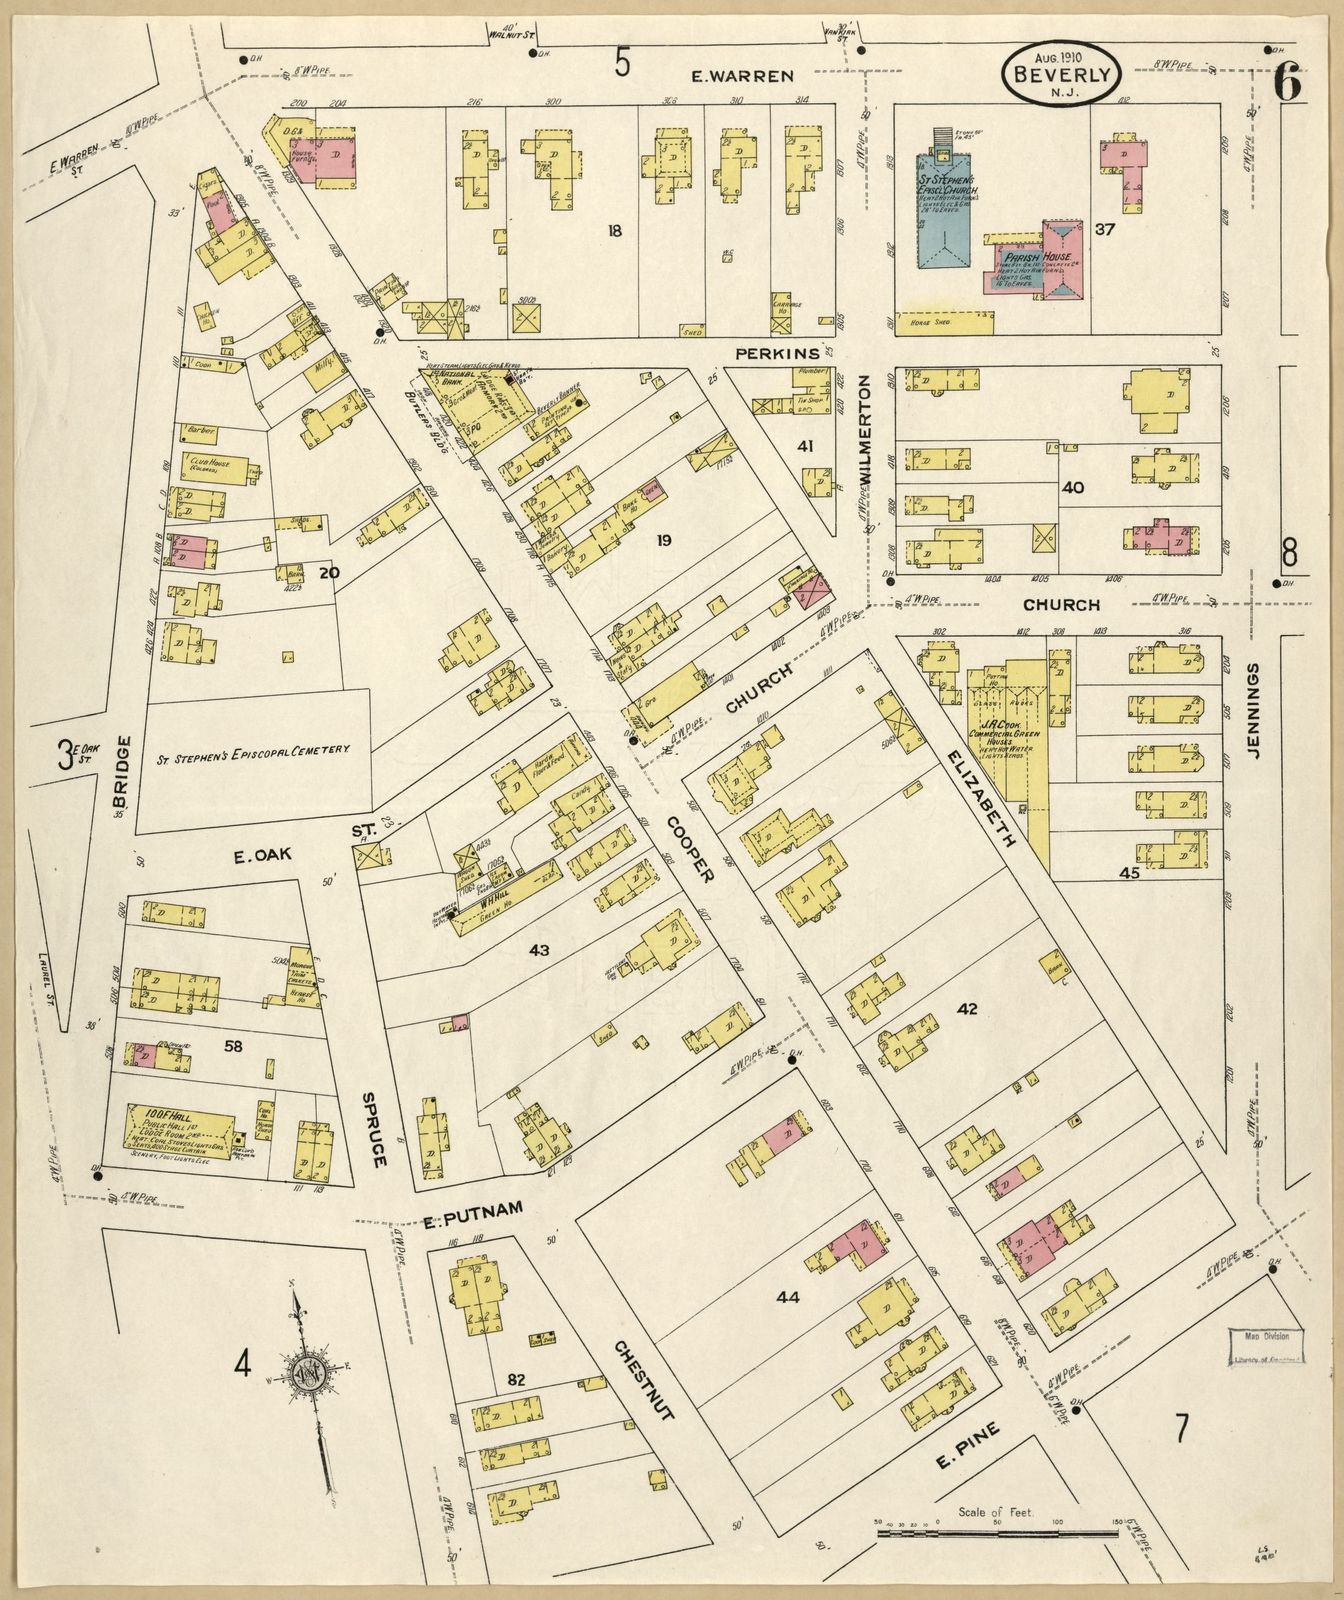 Sanborn Fire Insurance Map From Beverly Burlington County New